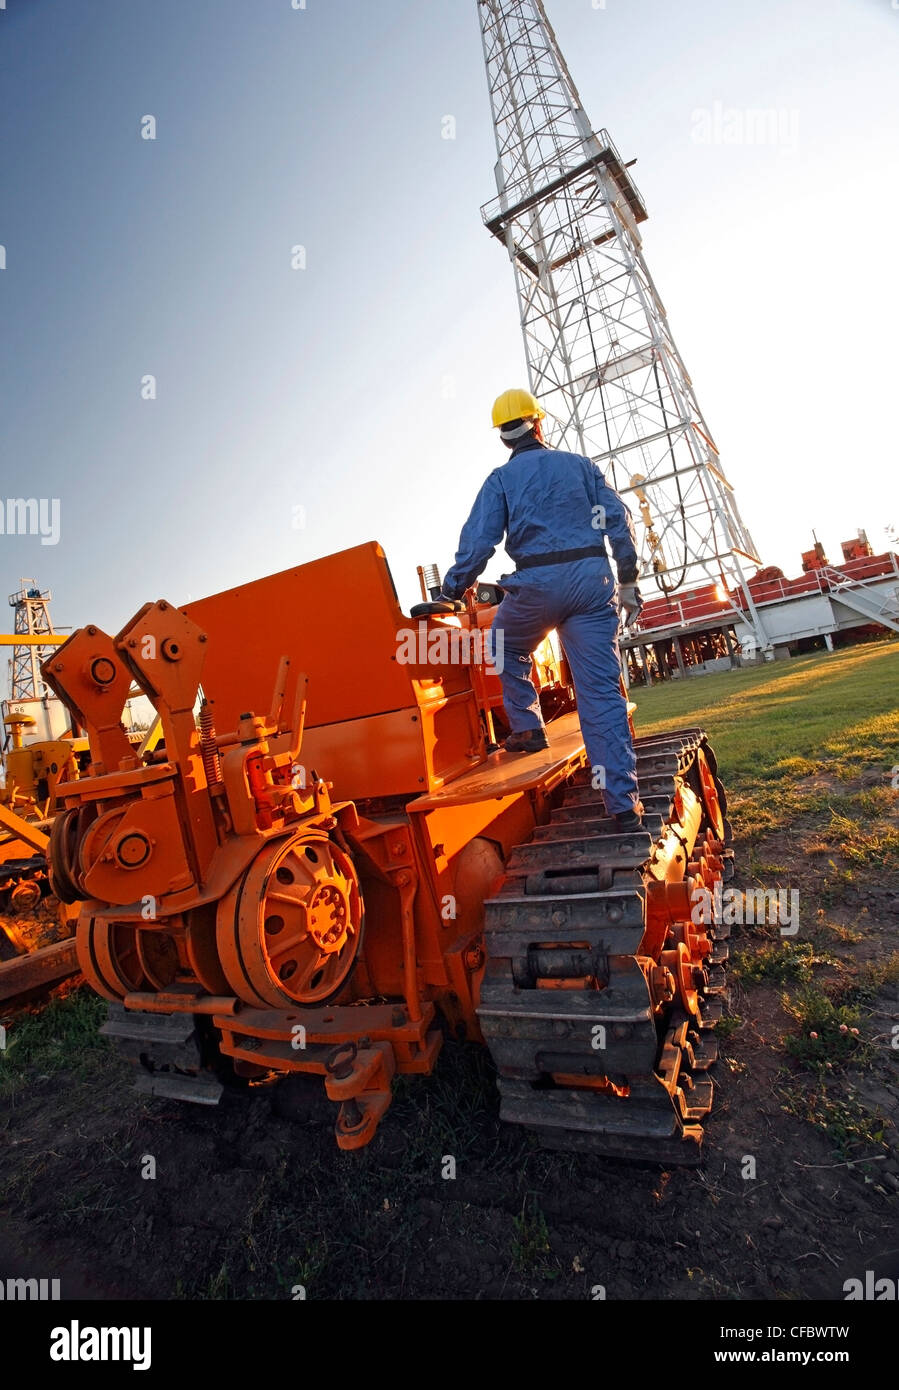 Worker on earth moving equipment at oil drilling site - Stock Image